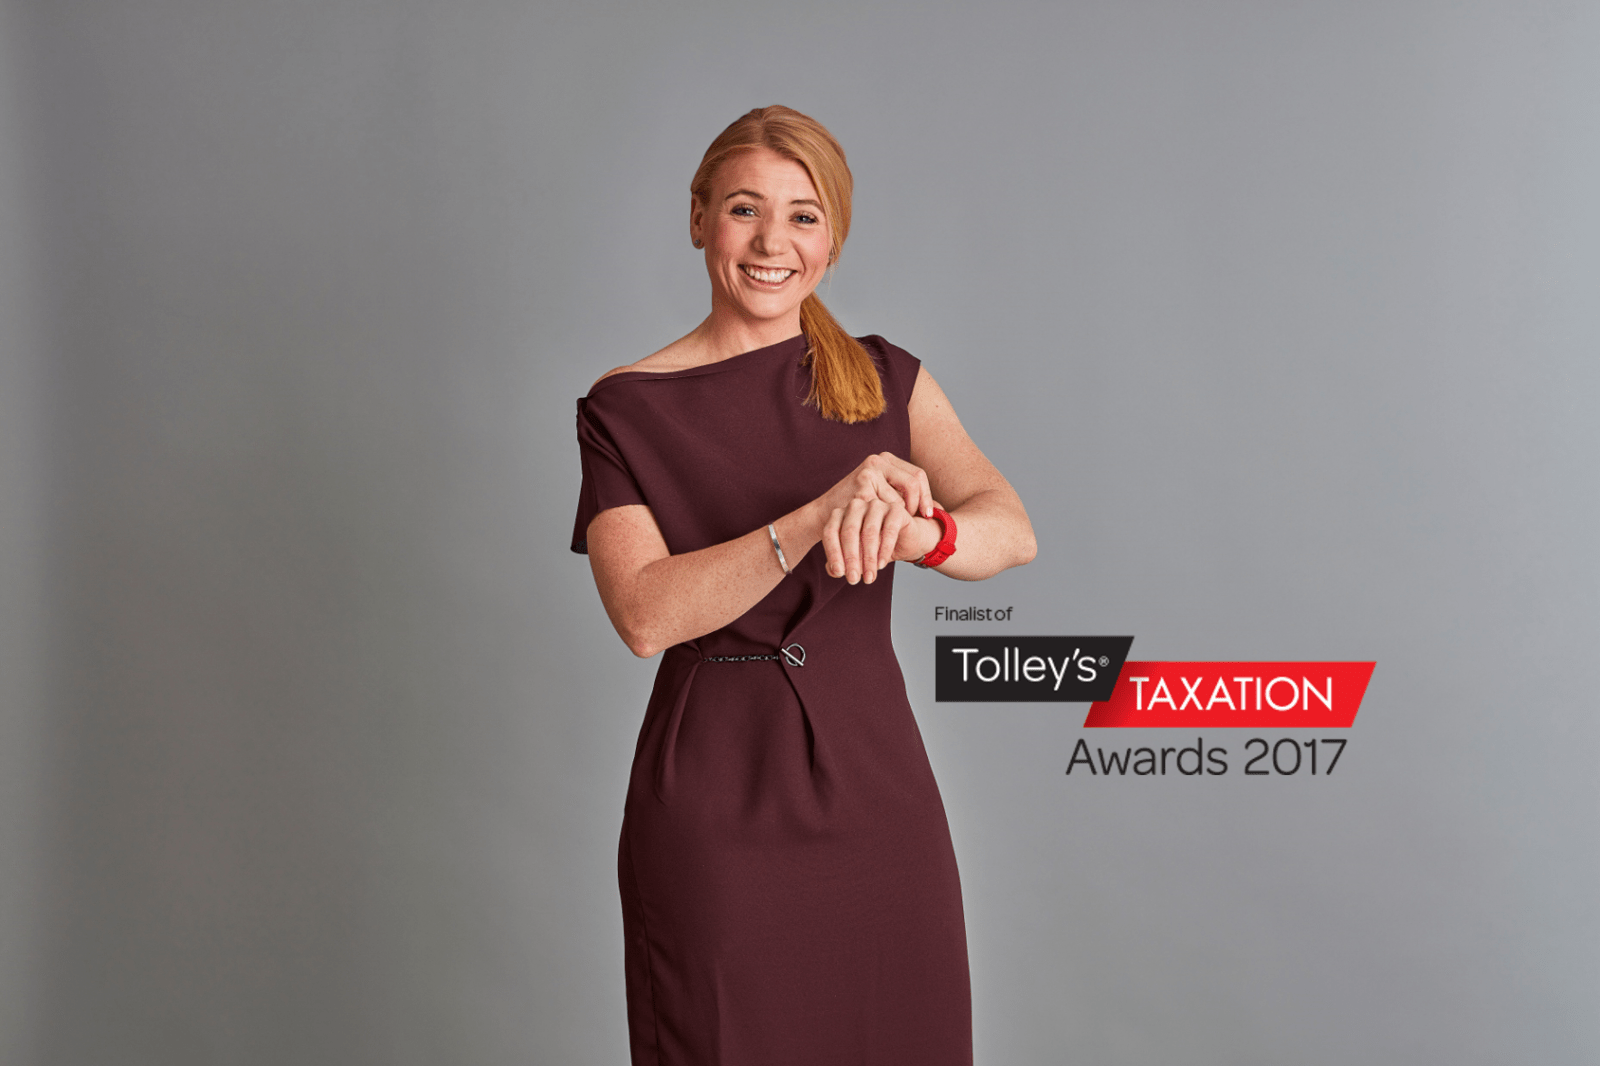 Lisa=-Marie Smith is shortlisted for a Taxation Award 2017